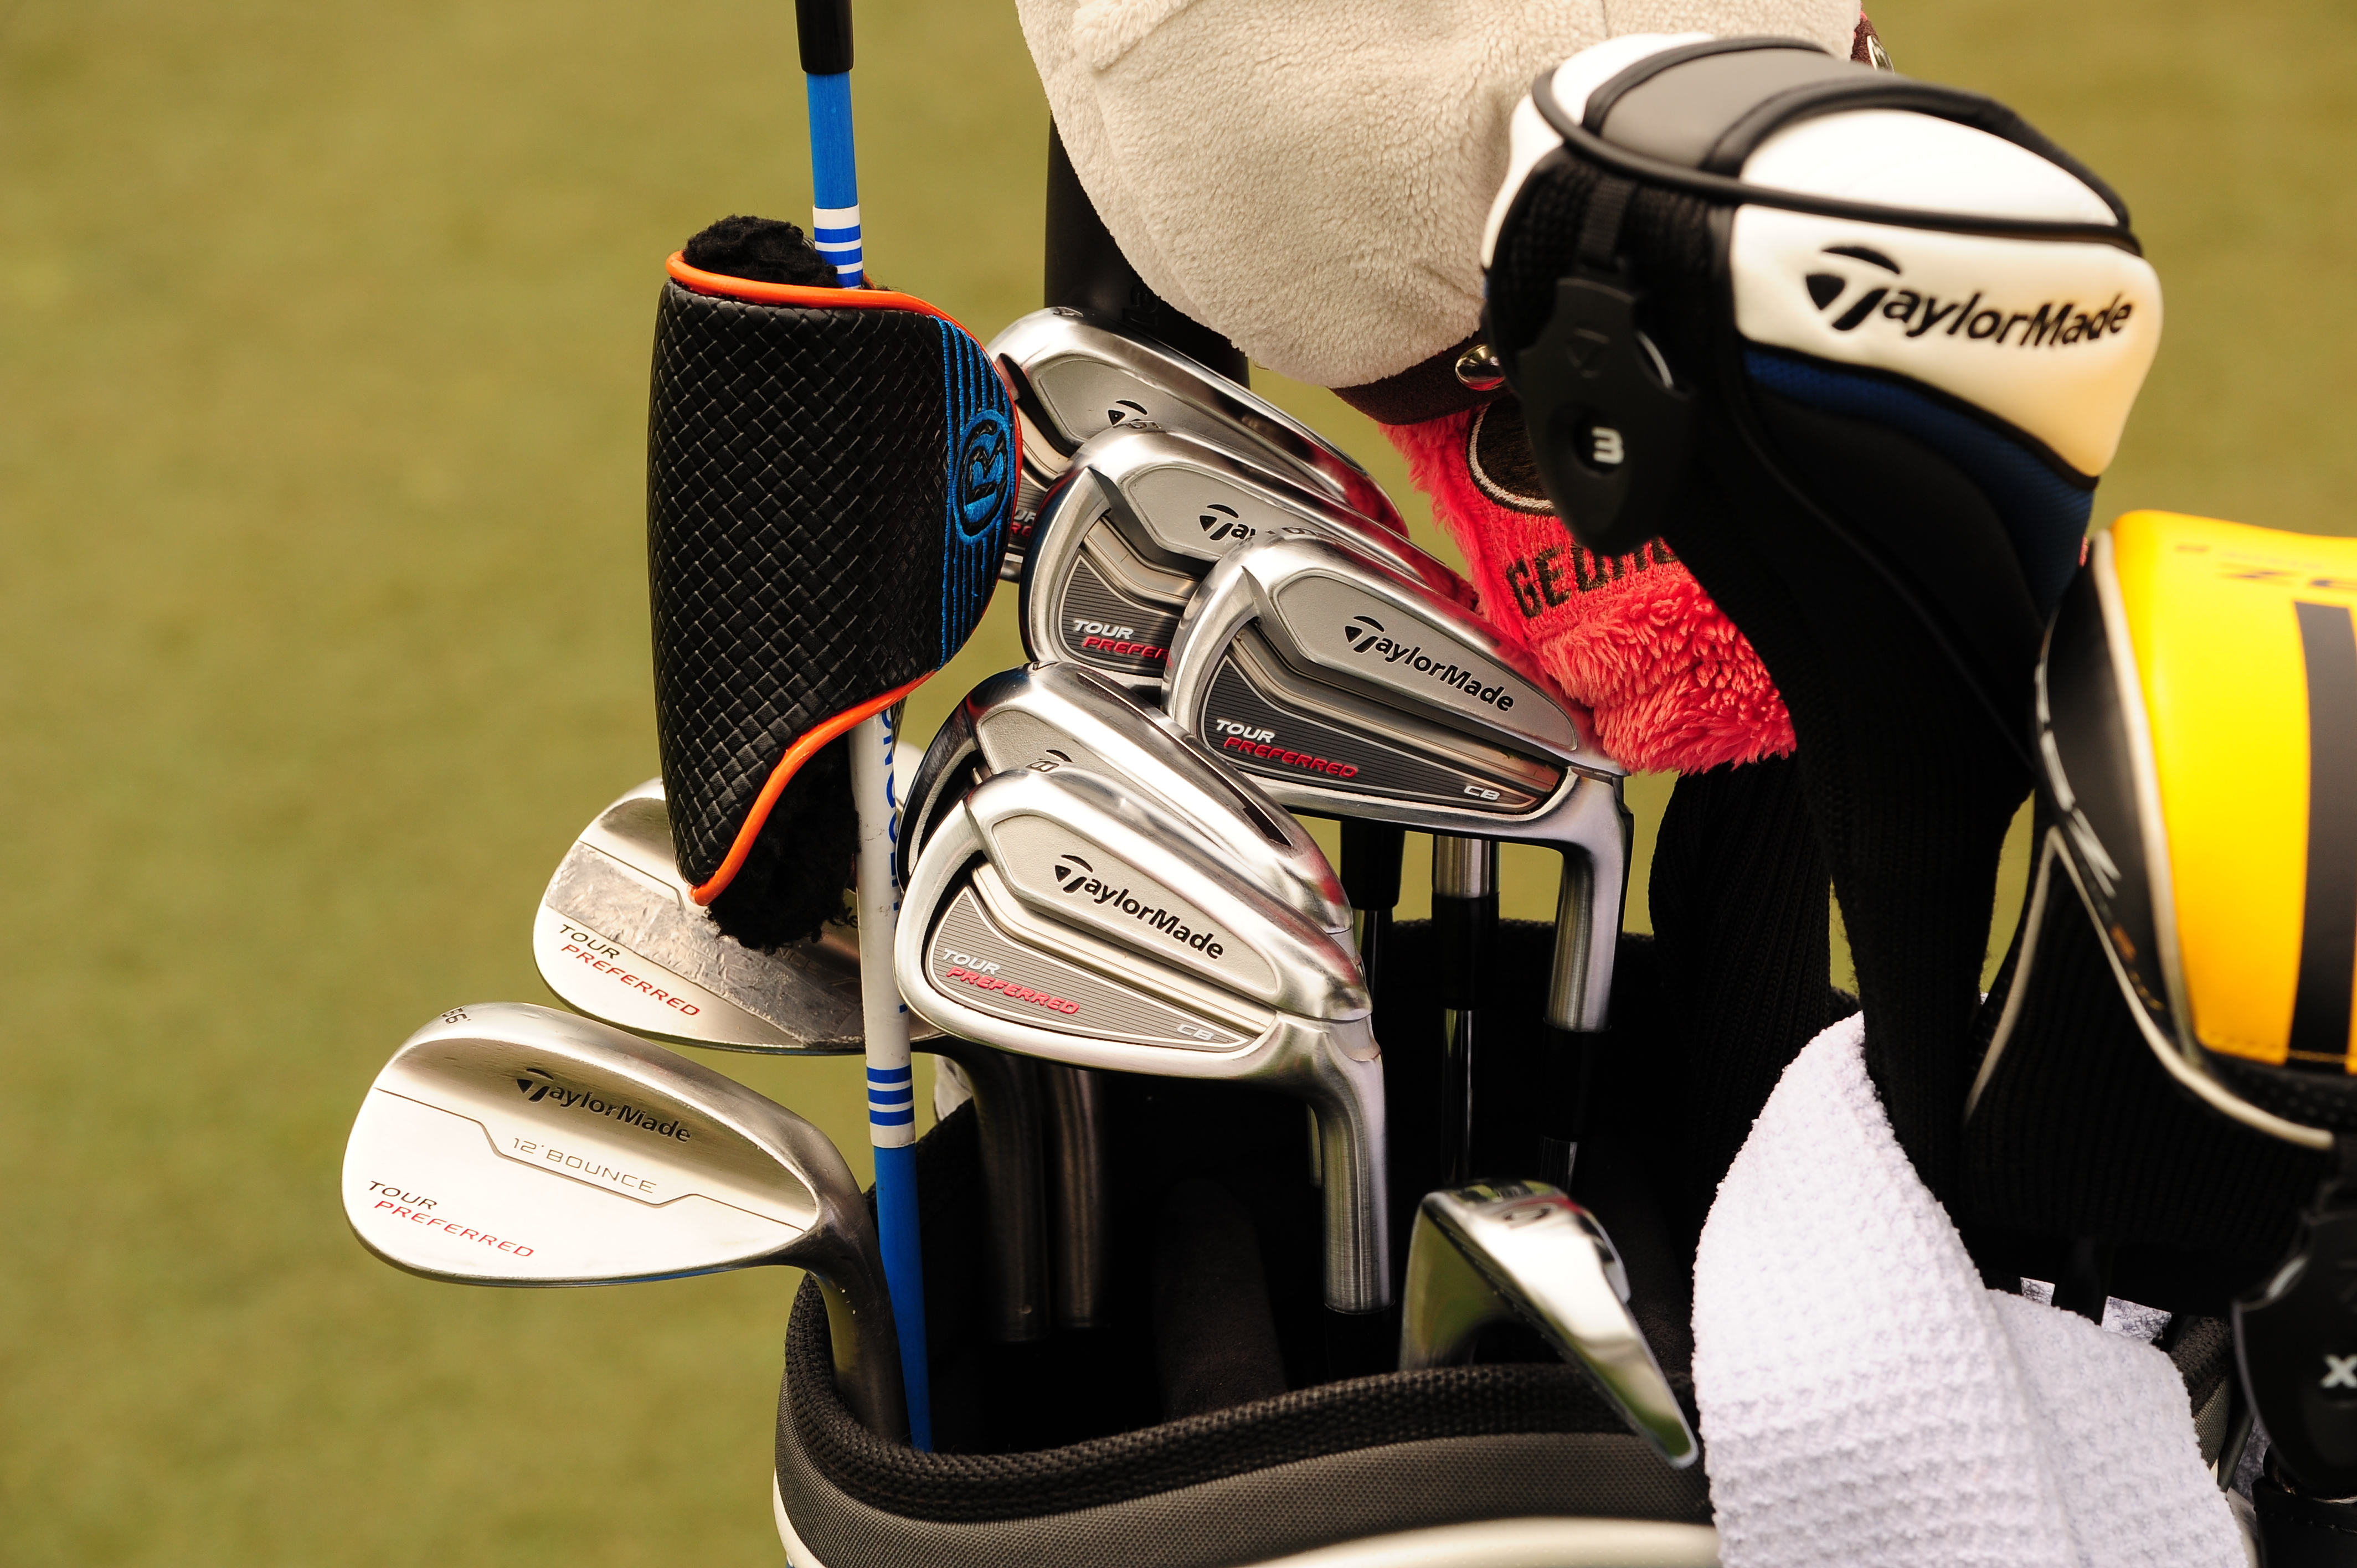 Brendon Todd has a bag full of TaylorMade sticks including Tour Preferred CB irons, Tour Preferred wedges and an SLDR fairway wood. It looks like he might have a Rife putter as well.